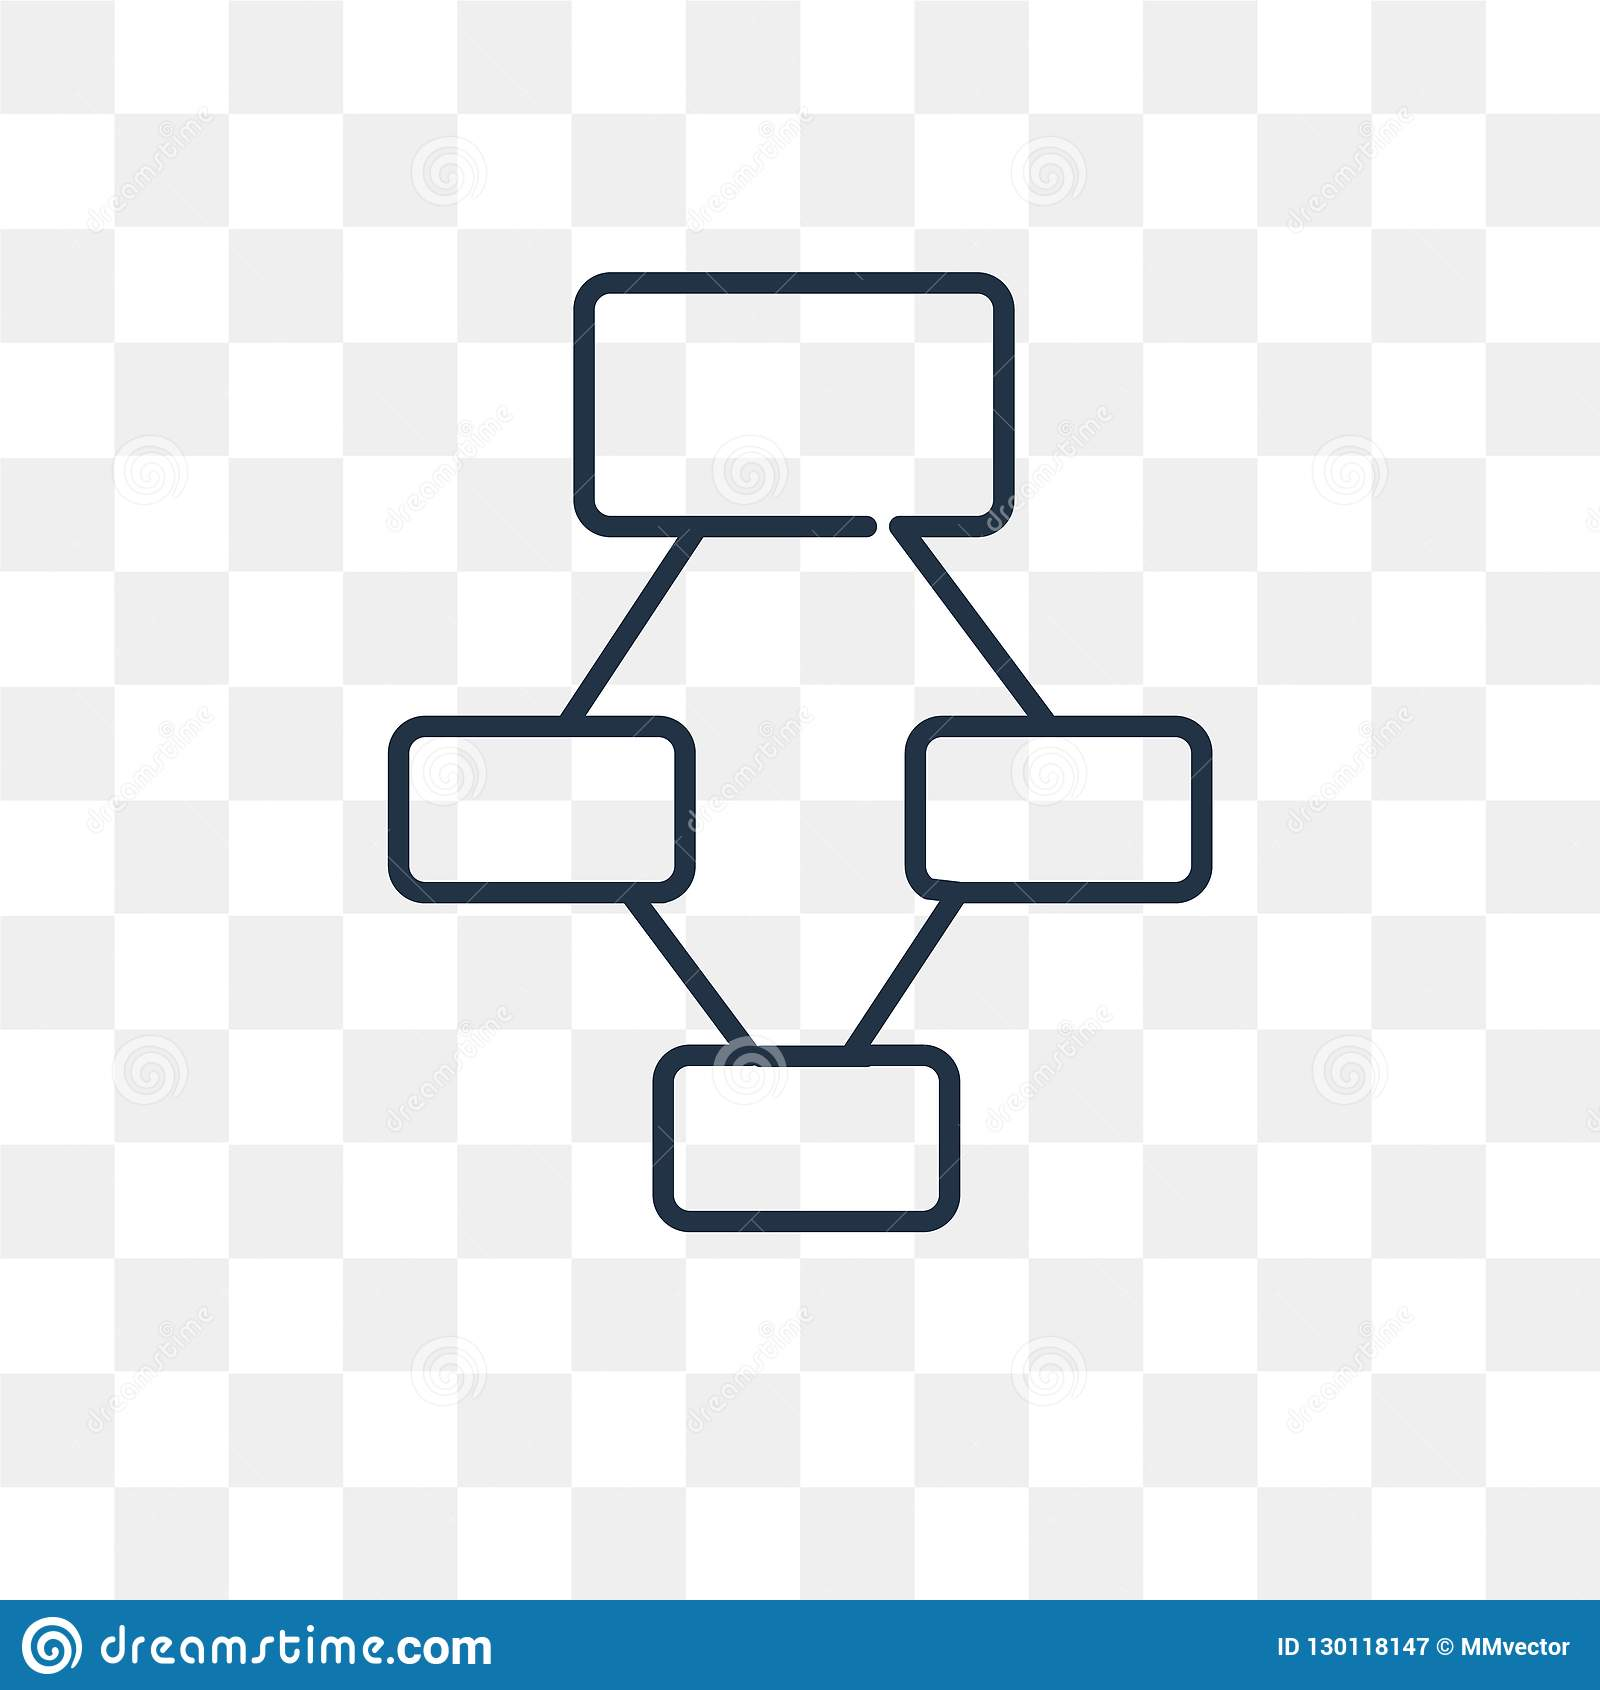 Hierarchical structure vector icon isolated on transparent background, linear Hierarchical structure transparency concept can be